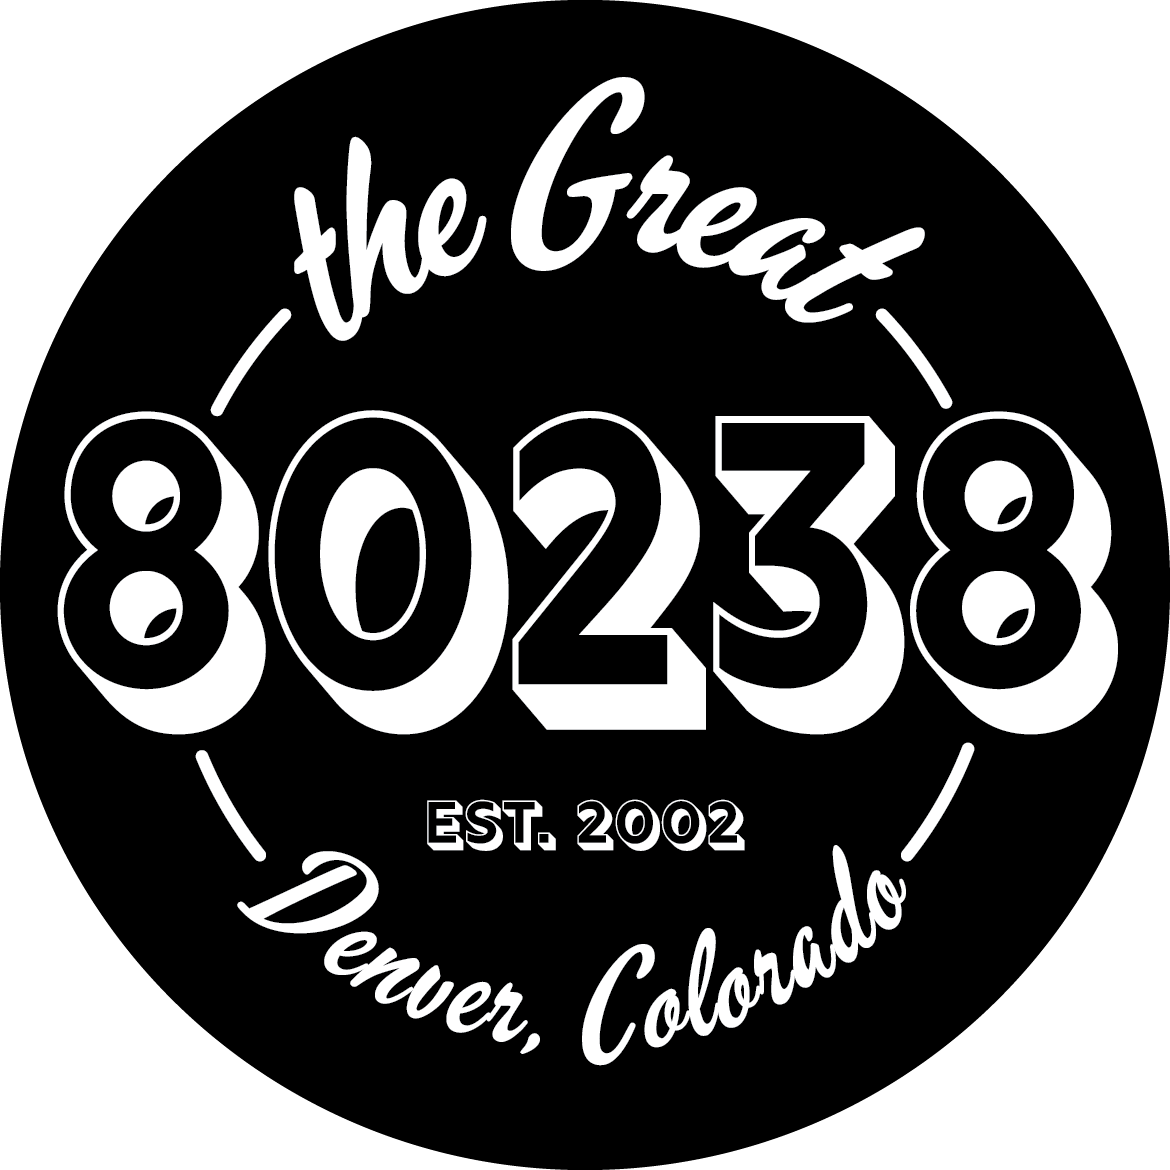 The Great 80238